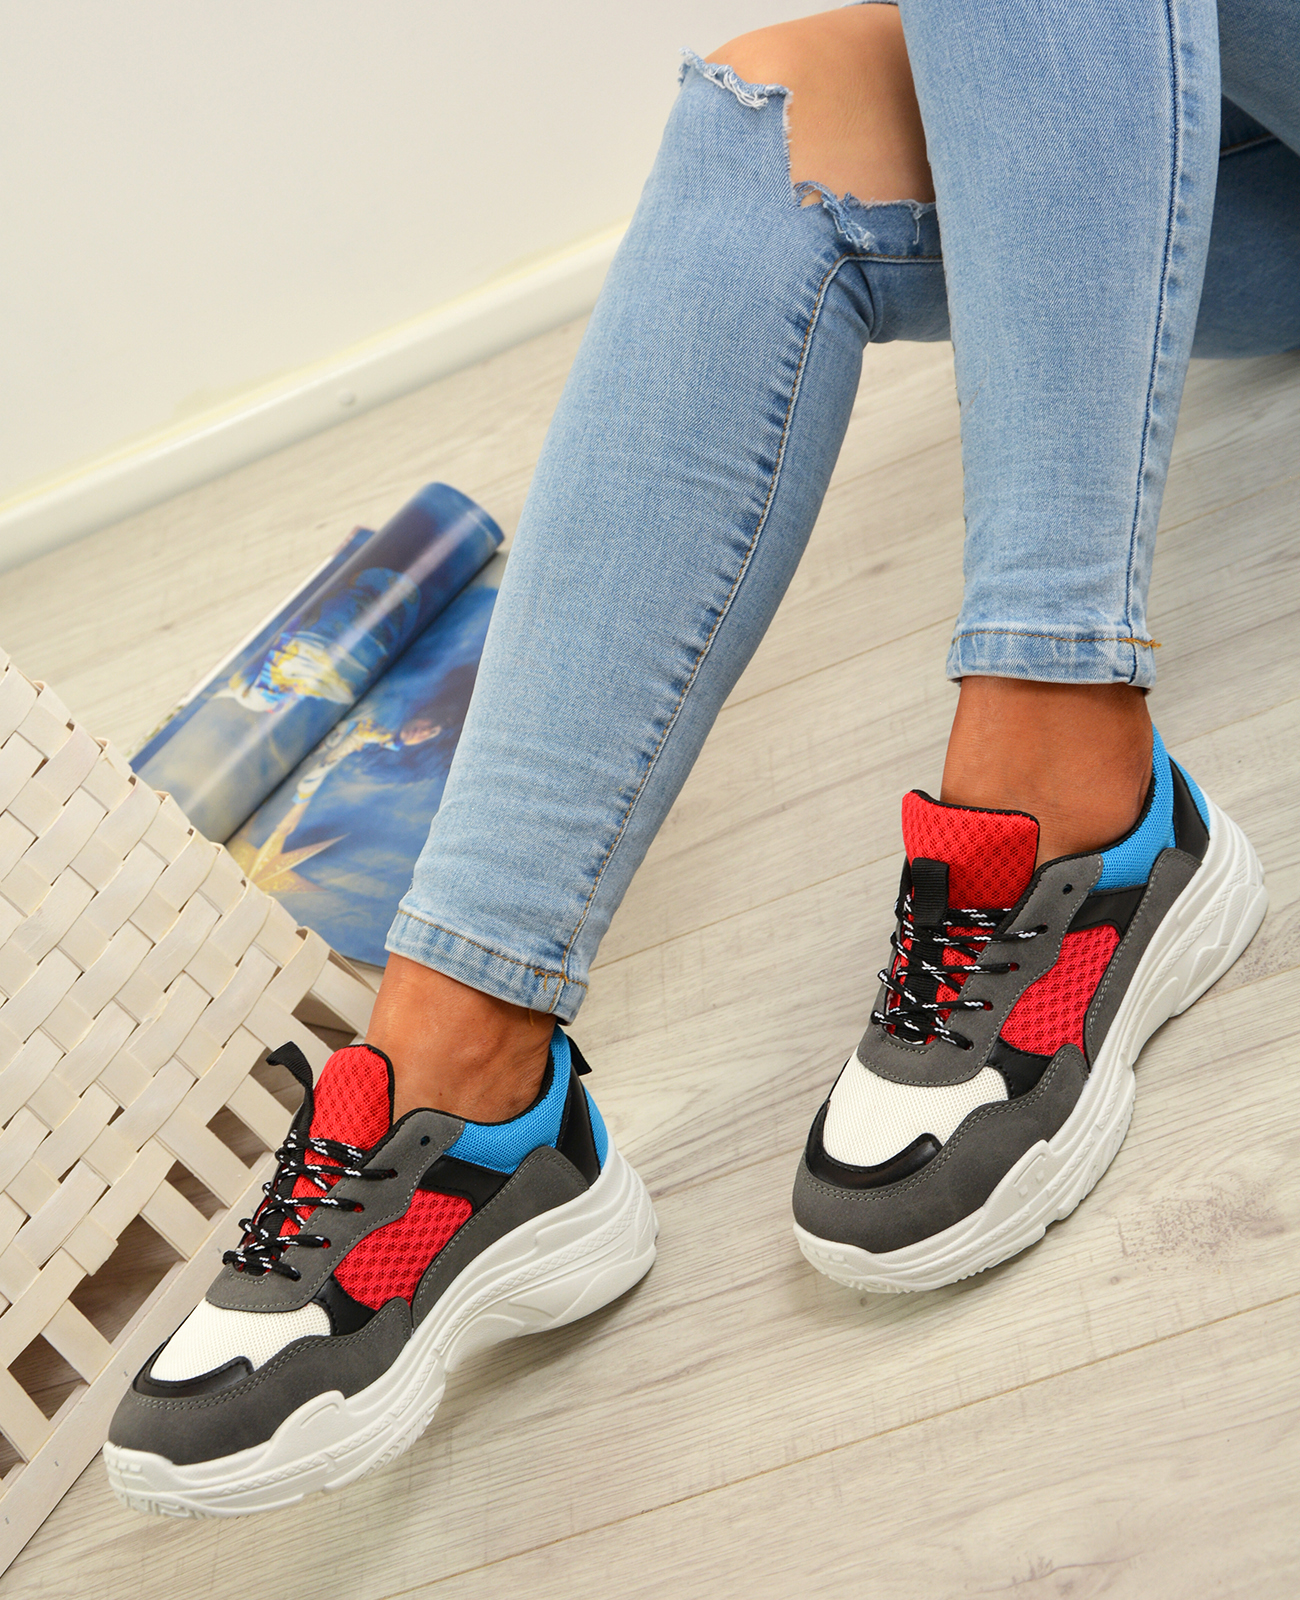 Femme-Running-Gym-Baskets-a-Lacets-Baskets-Tennis-Chaussures-Tailles-UK miniature 14